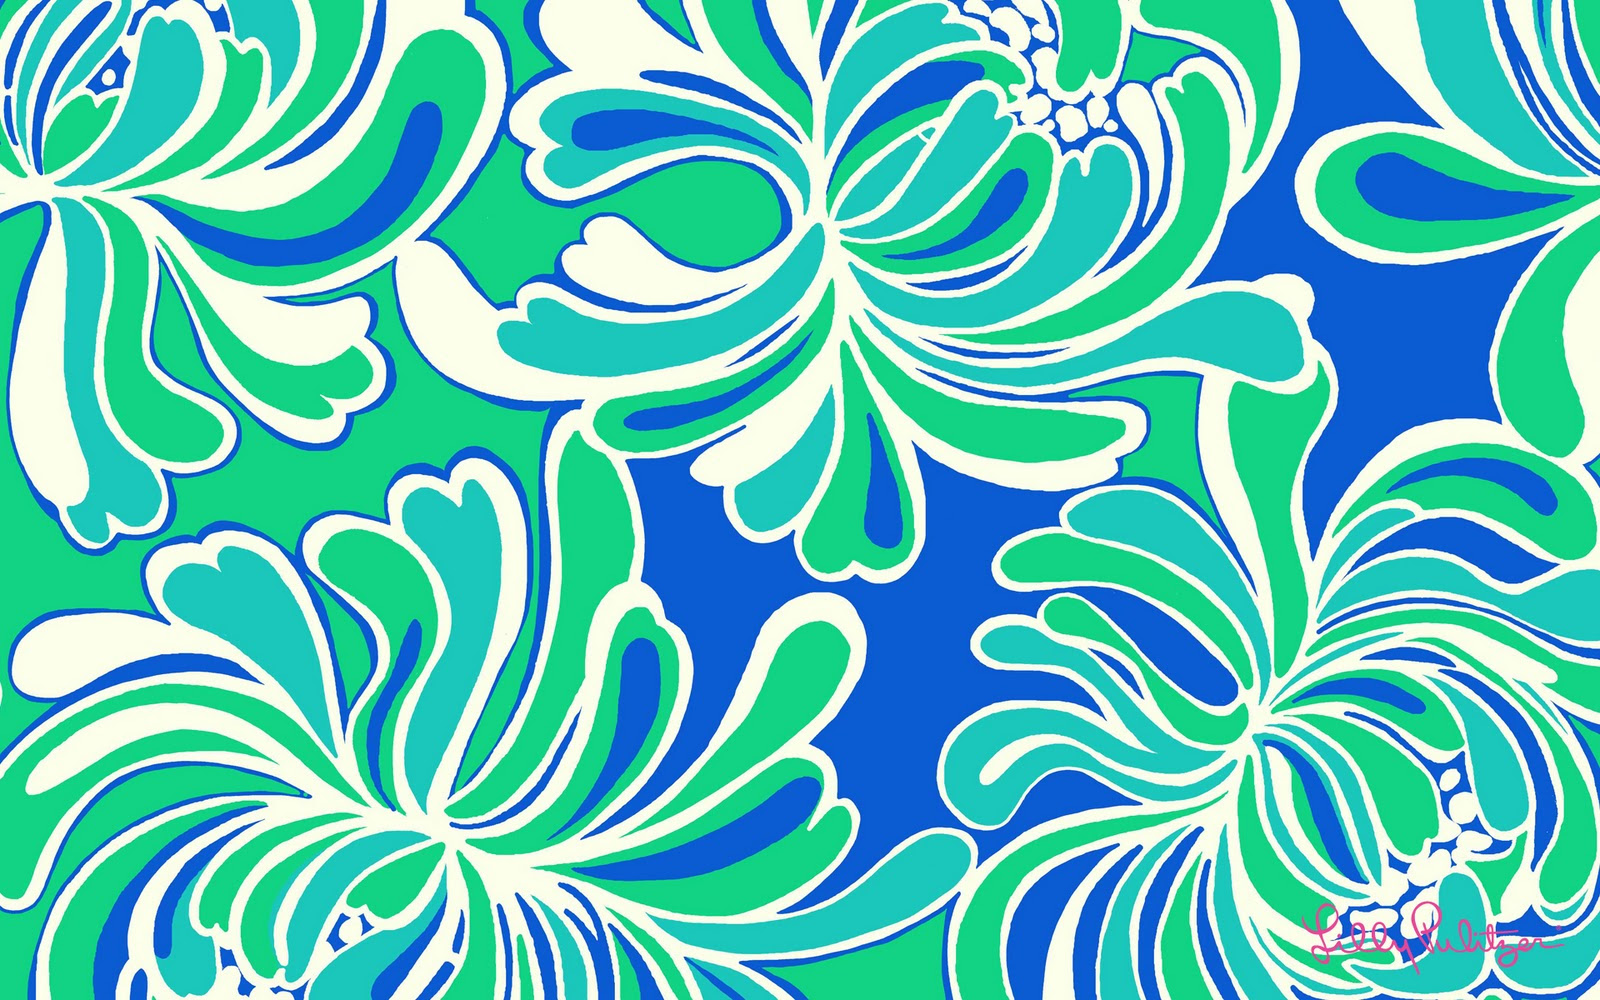 Lilly Pulitzer Backgrounds 12538 1600x1000 px ~ HDWallSource.com